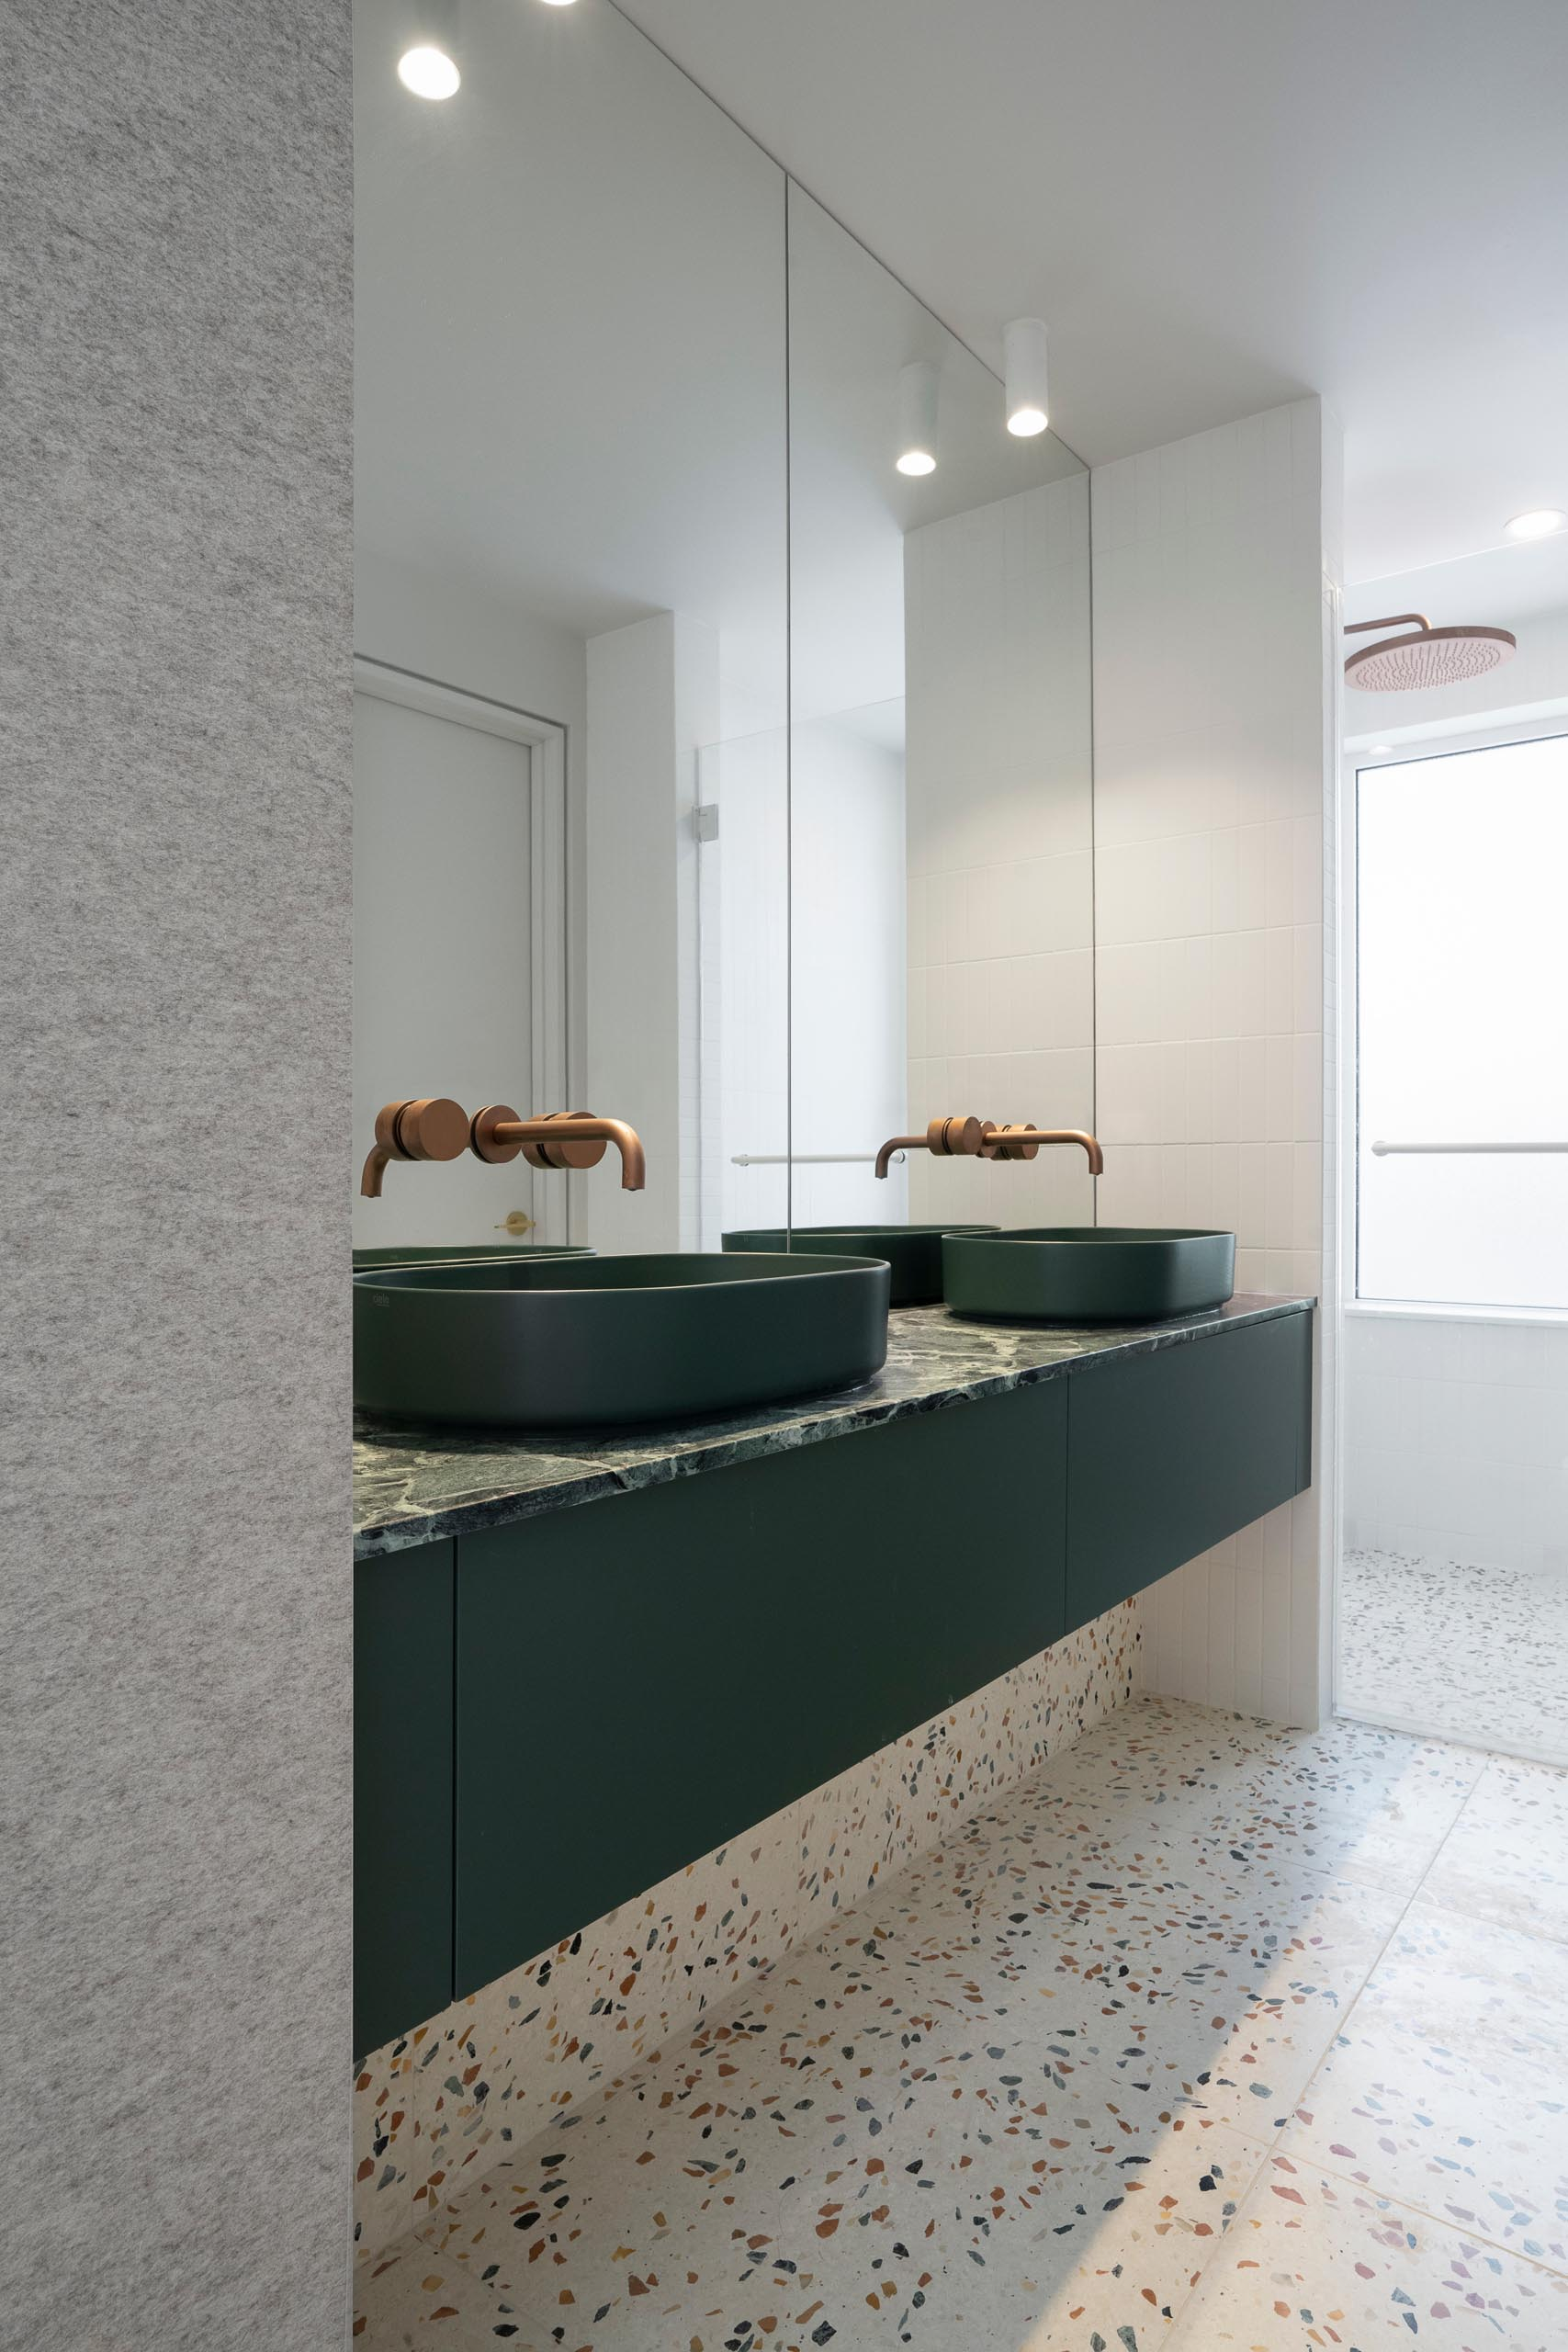 In this modern master bathroom, the Verde Saint-Denis marble countertop, emerald green sinks, and warm natural felt walls also harmonize with the terrazzo flooring.